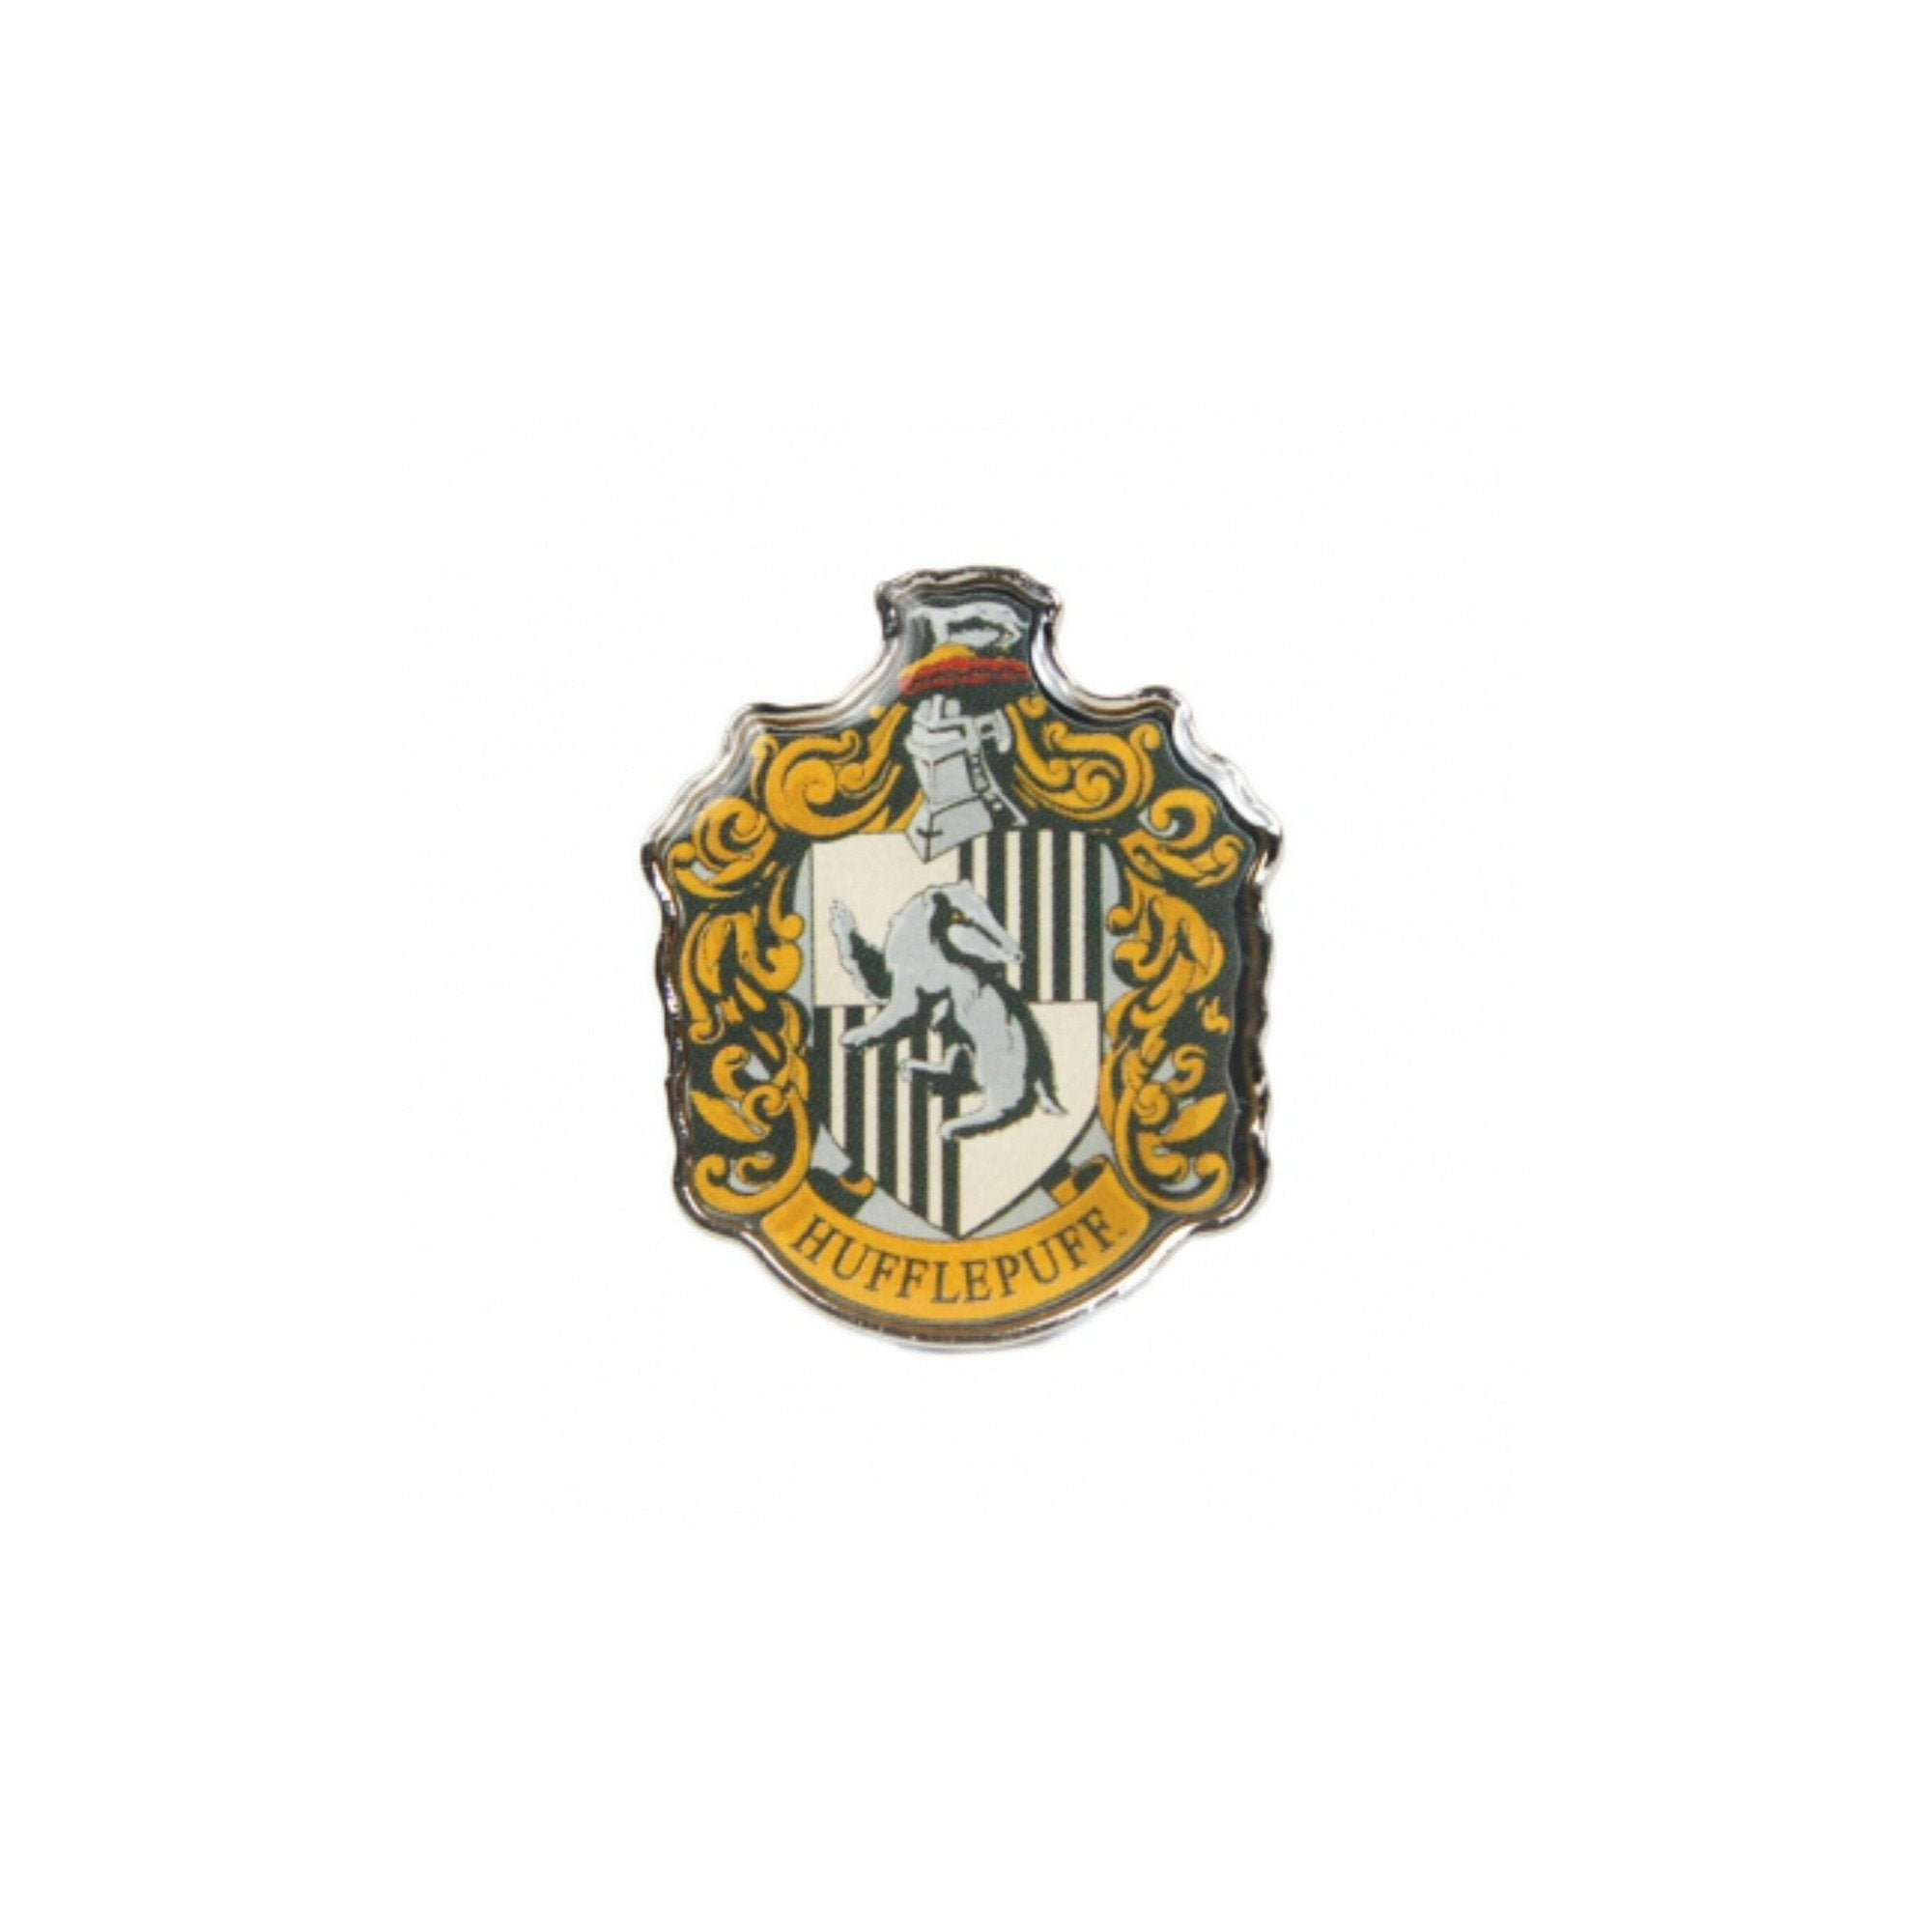 Harry Potter Hufflepuff Lapel Pin Badge - Minimum Mouse